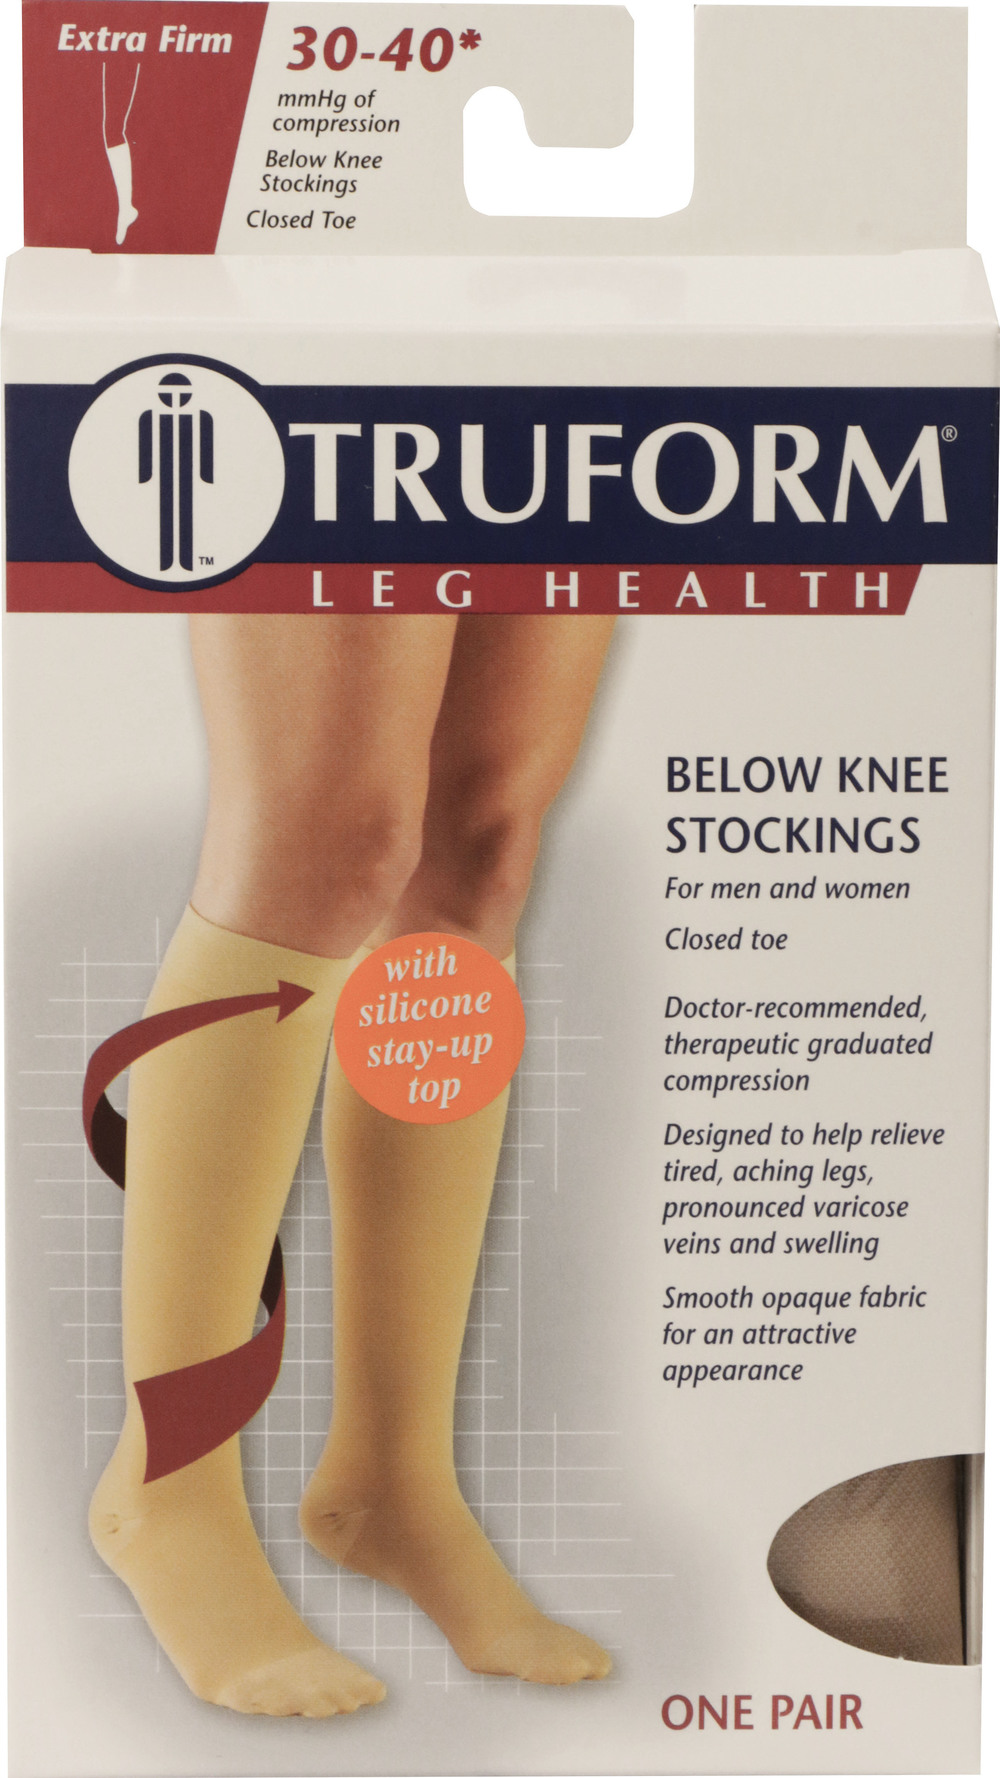 Truform, 0844, 30-40 mmHg, Knee High, Silicone Dot Top, Closed Toe, Package